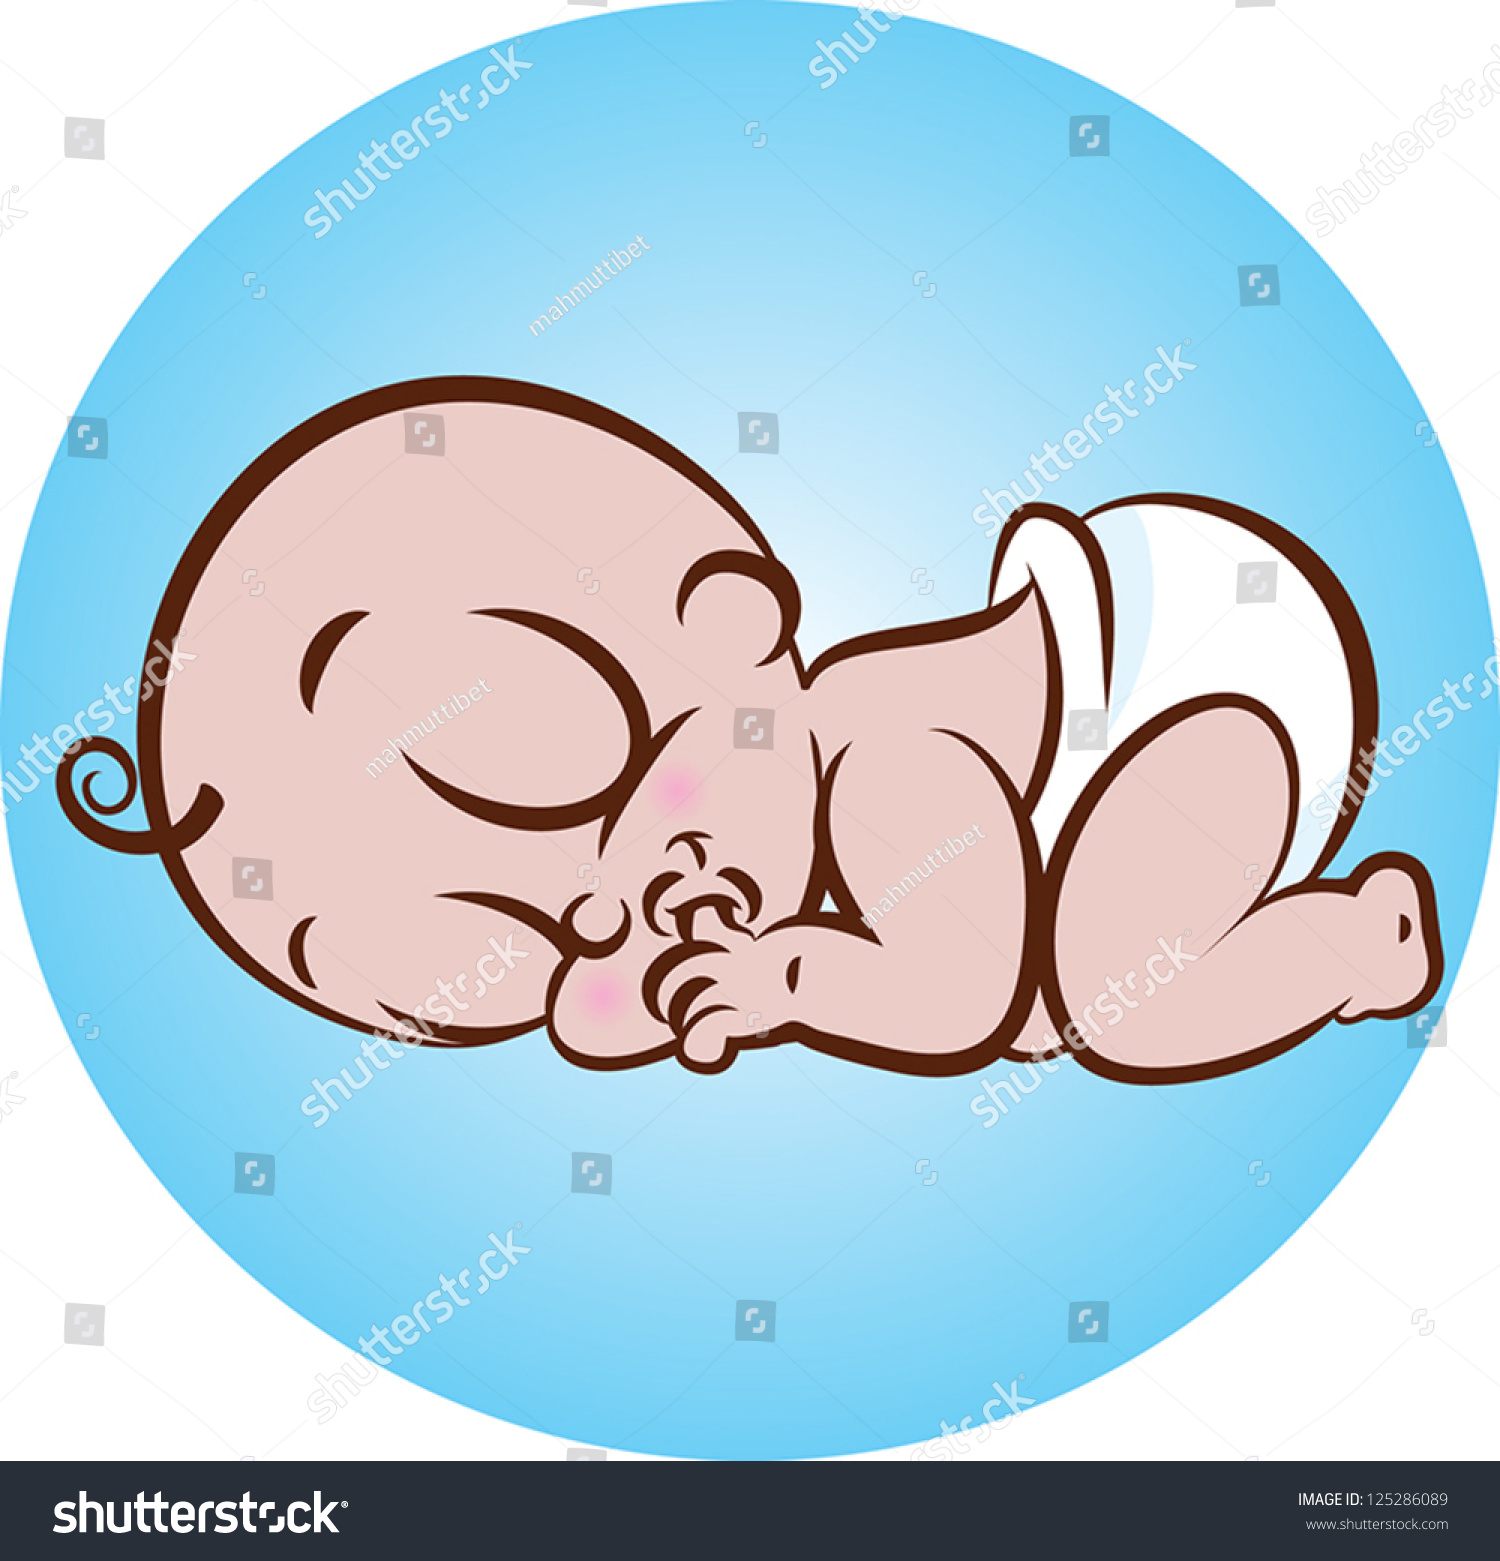 royalty-free vector illustration of a cute sleeping… #125286089